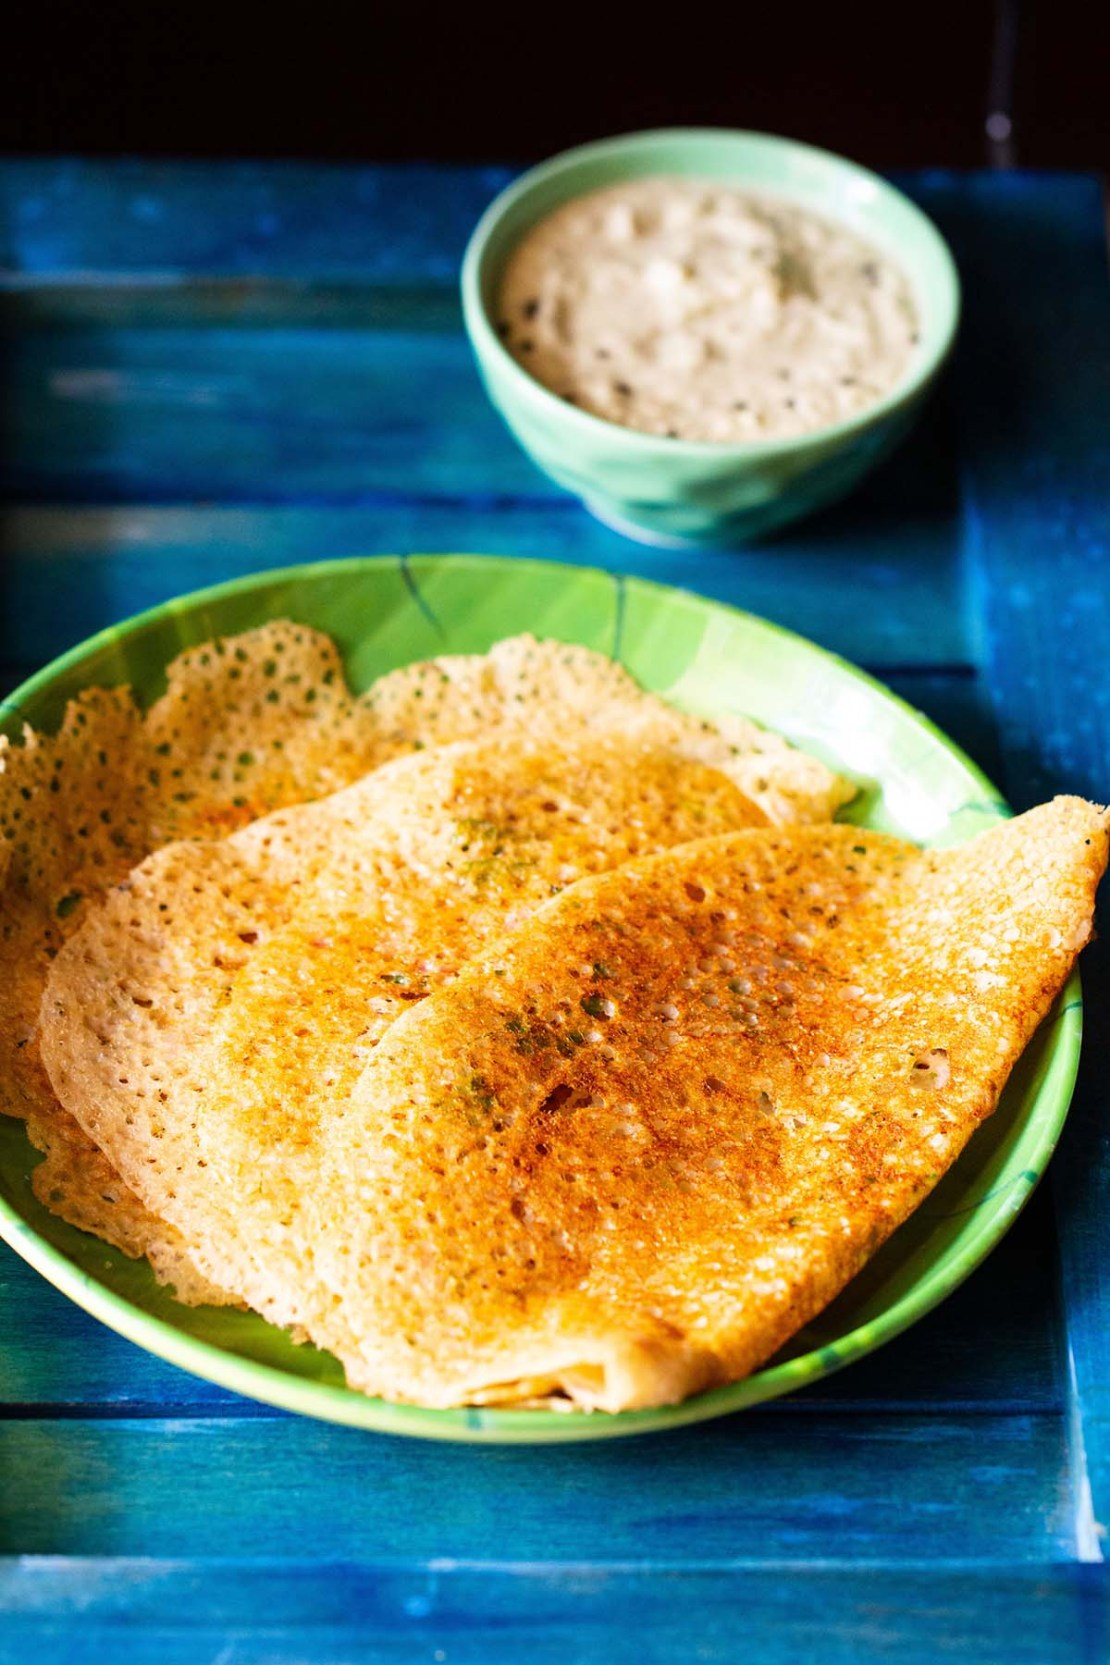 folded oats dosa placed on a green plate with a side of coconut chutney in a green bowl